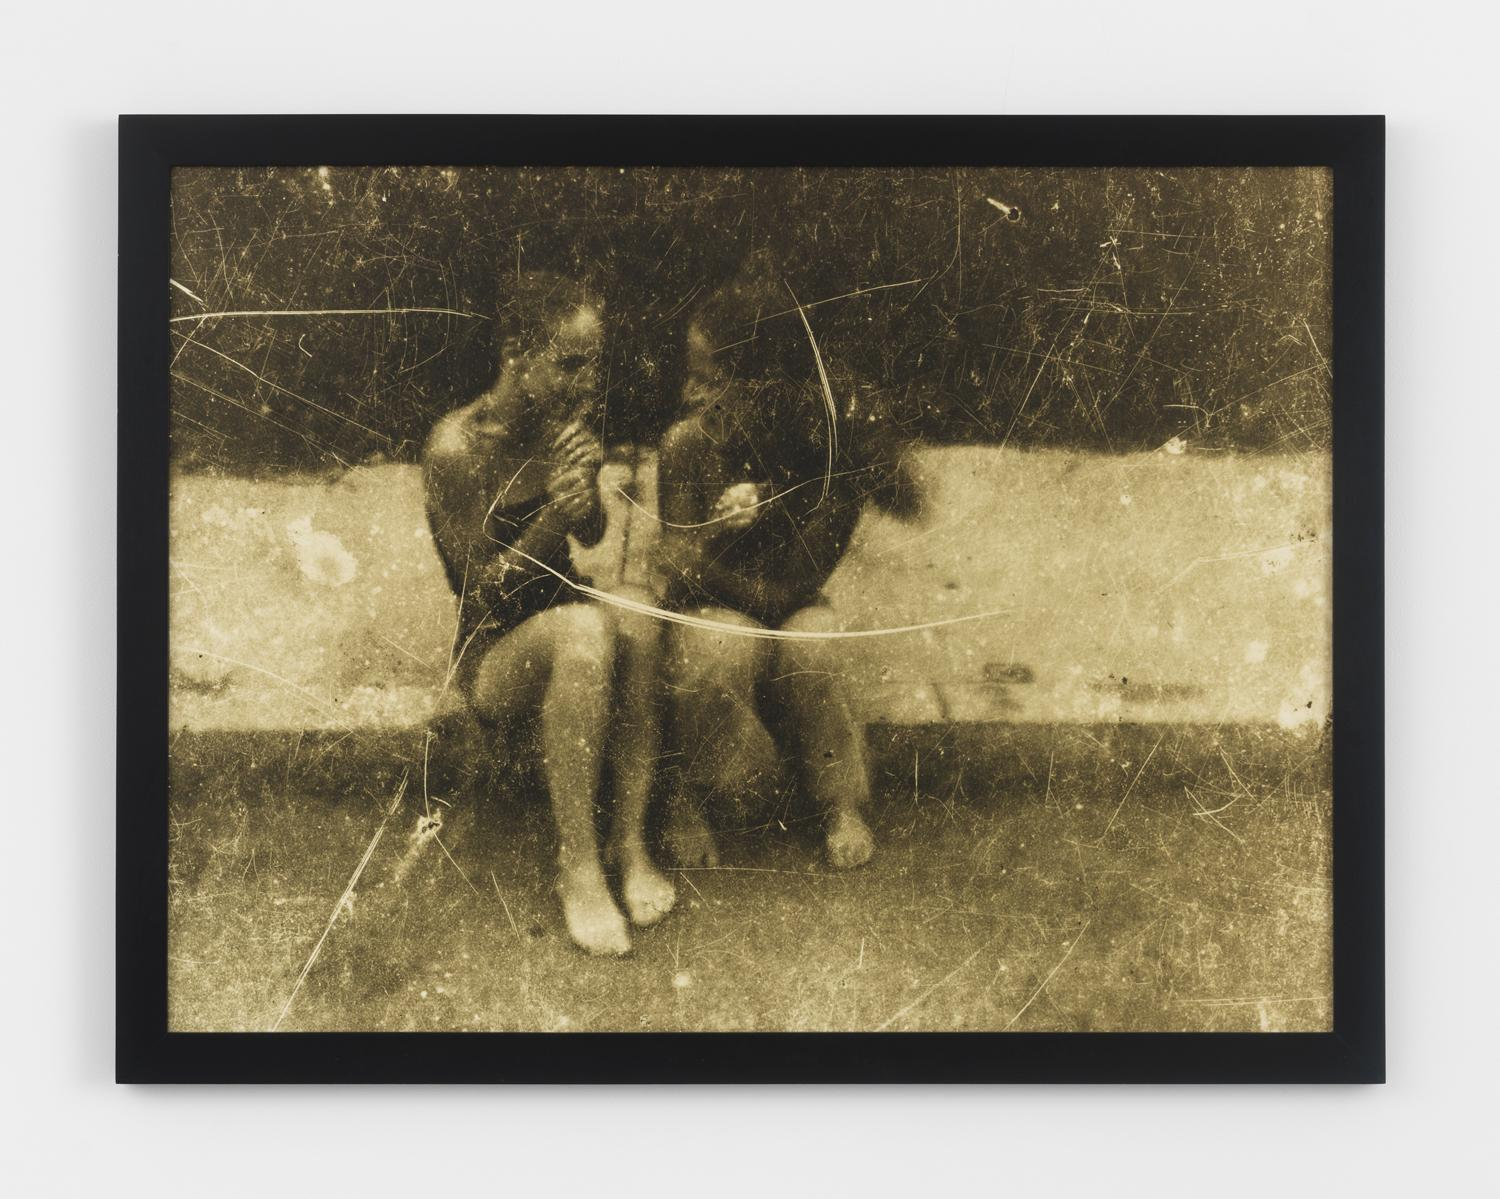 Barbara Ess, Girls on Curb, 1983, C-Print, 30h x 40w in.